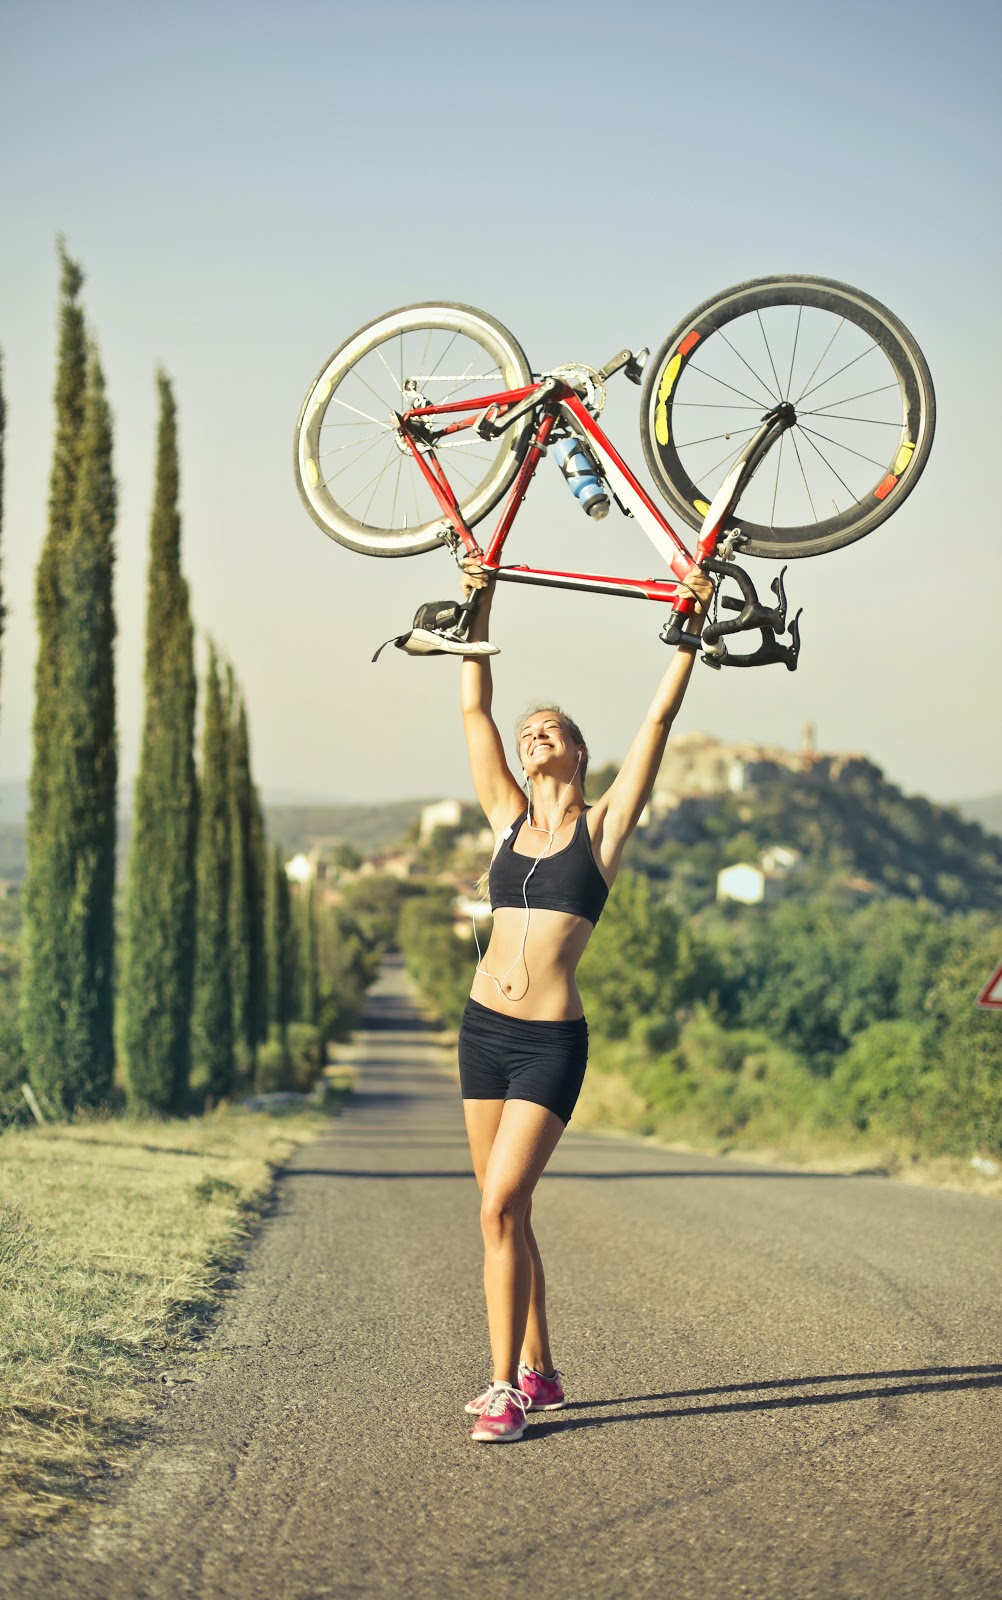 The Sports Archives Blog - The Sports Archives - How To Take Your Passion For Cycling Further